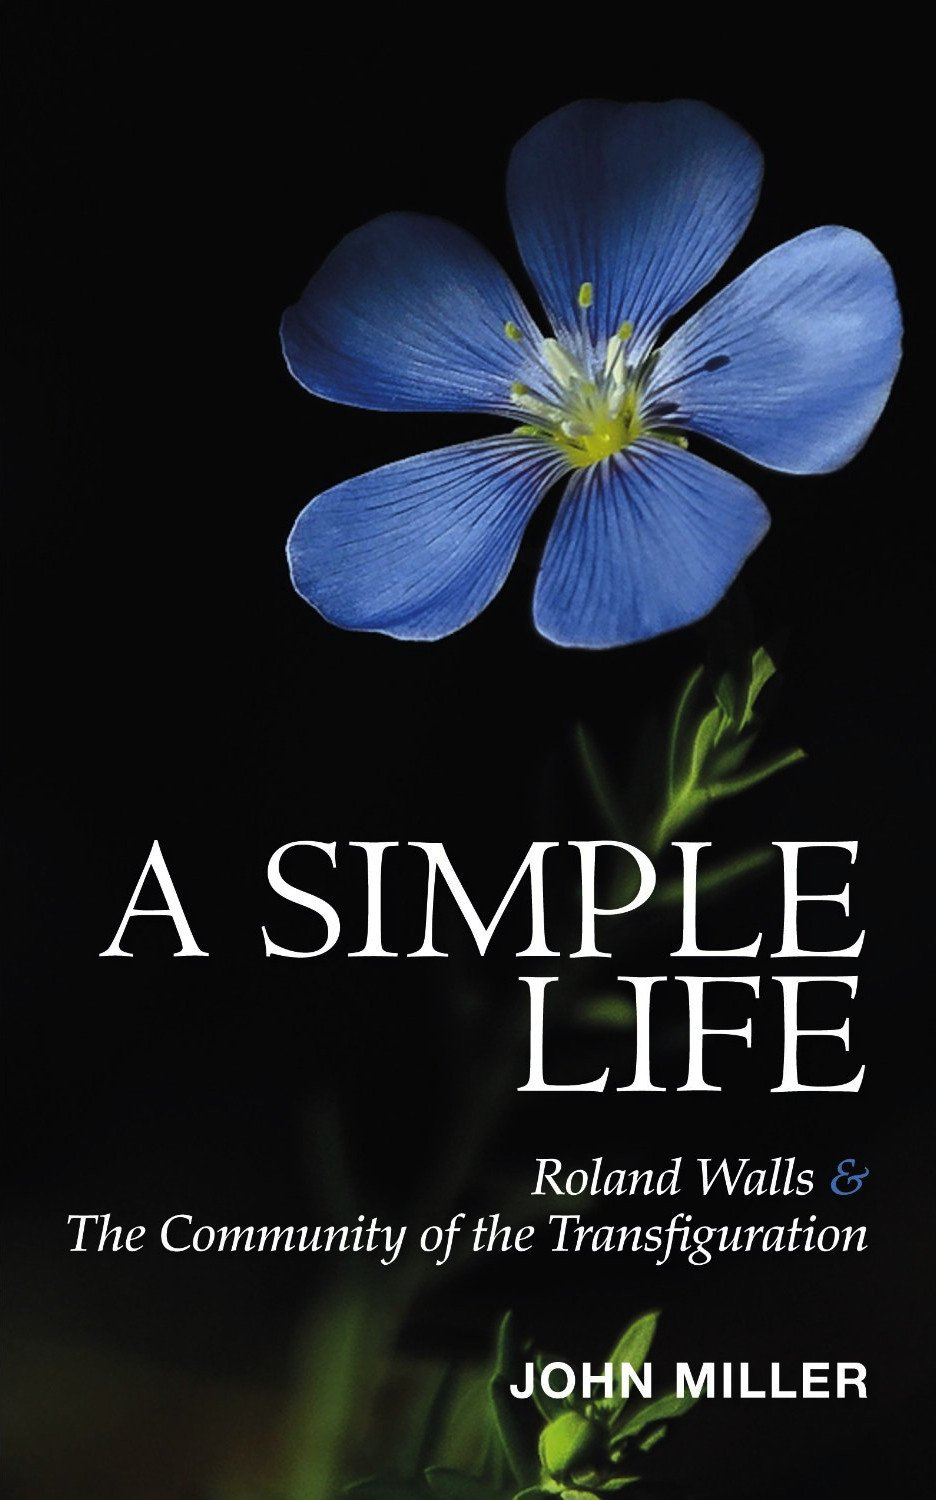 Download A Simple Life: Roland Walls & The Community of The Transfiguration ebook